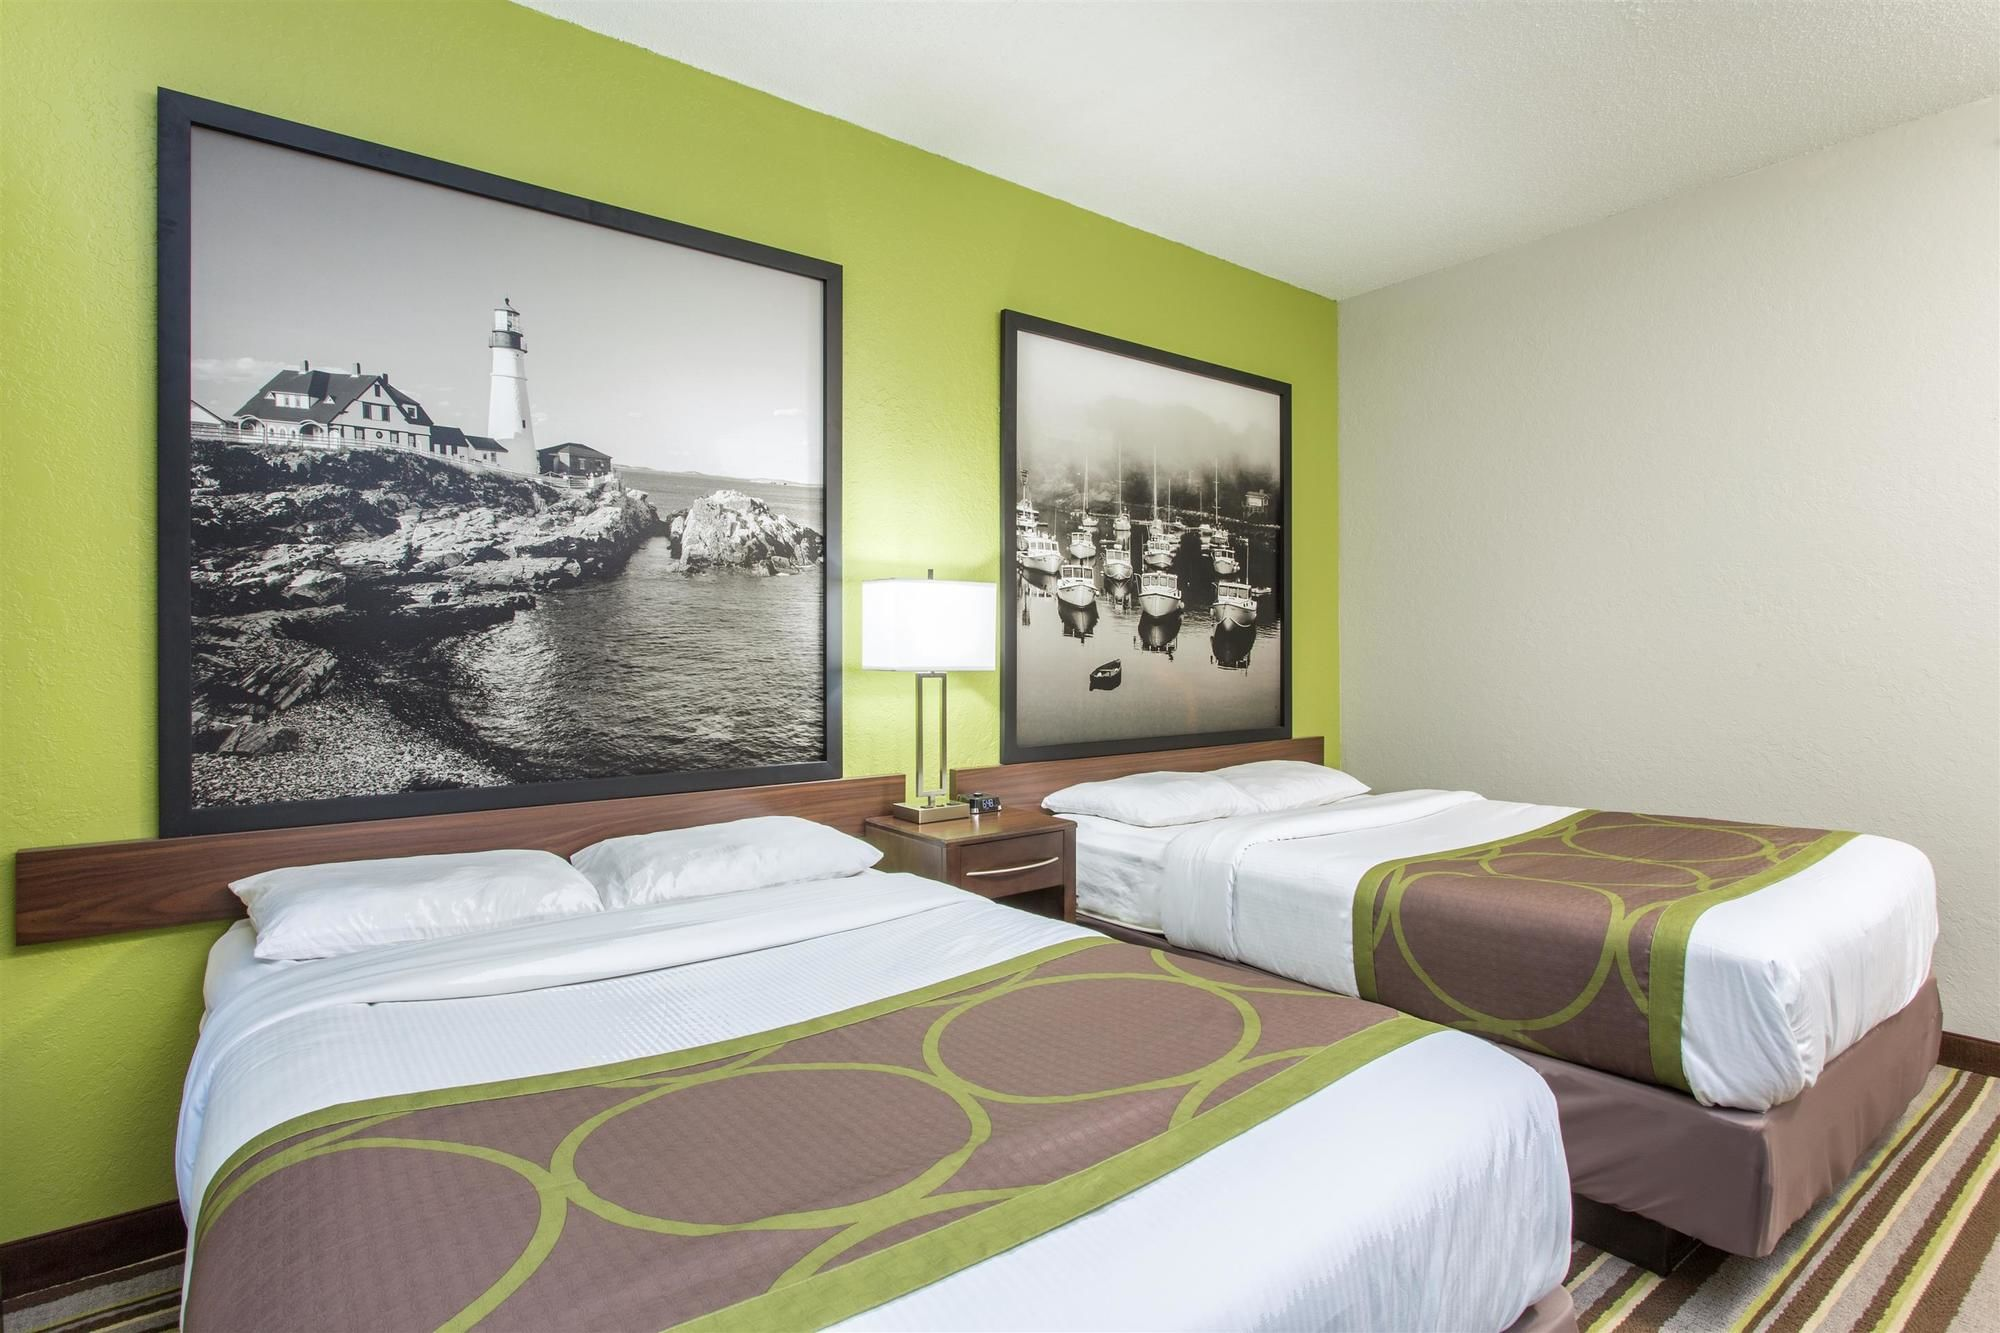 Freeport Hotel Coupons For Freeport Maine